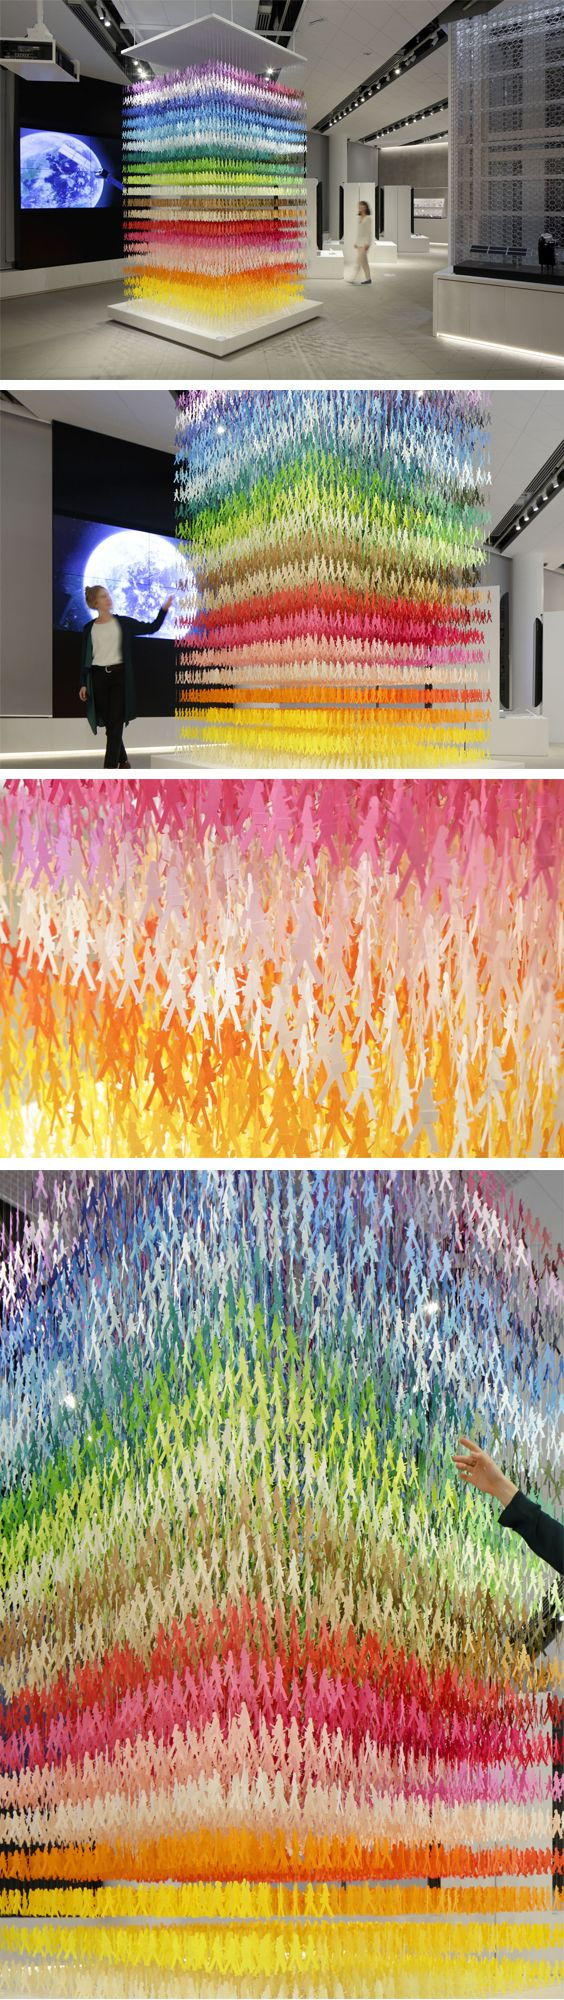 Click for more pics! | Giant Paper Sculptures That Use Color to Divide and Establish Space Within a Room #paperart #installation